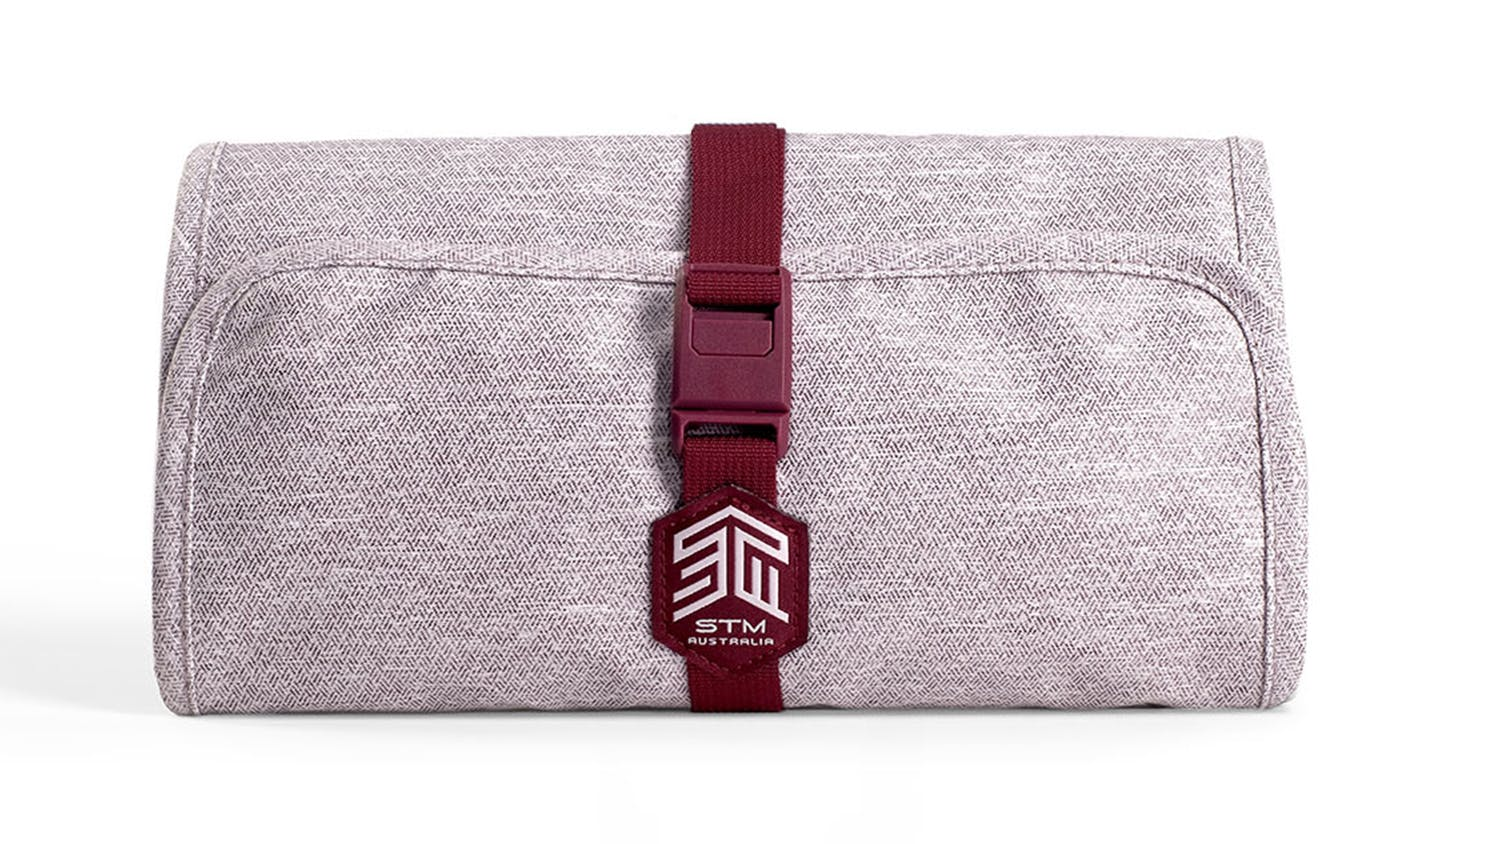 STM Dapper Wrapper Bag - Windsor Wine